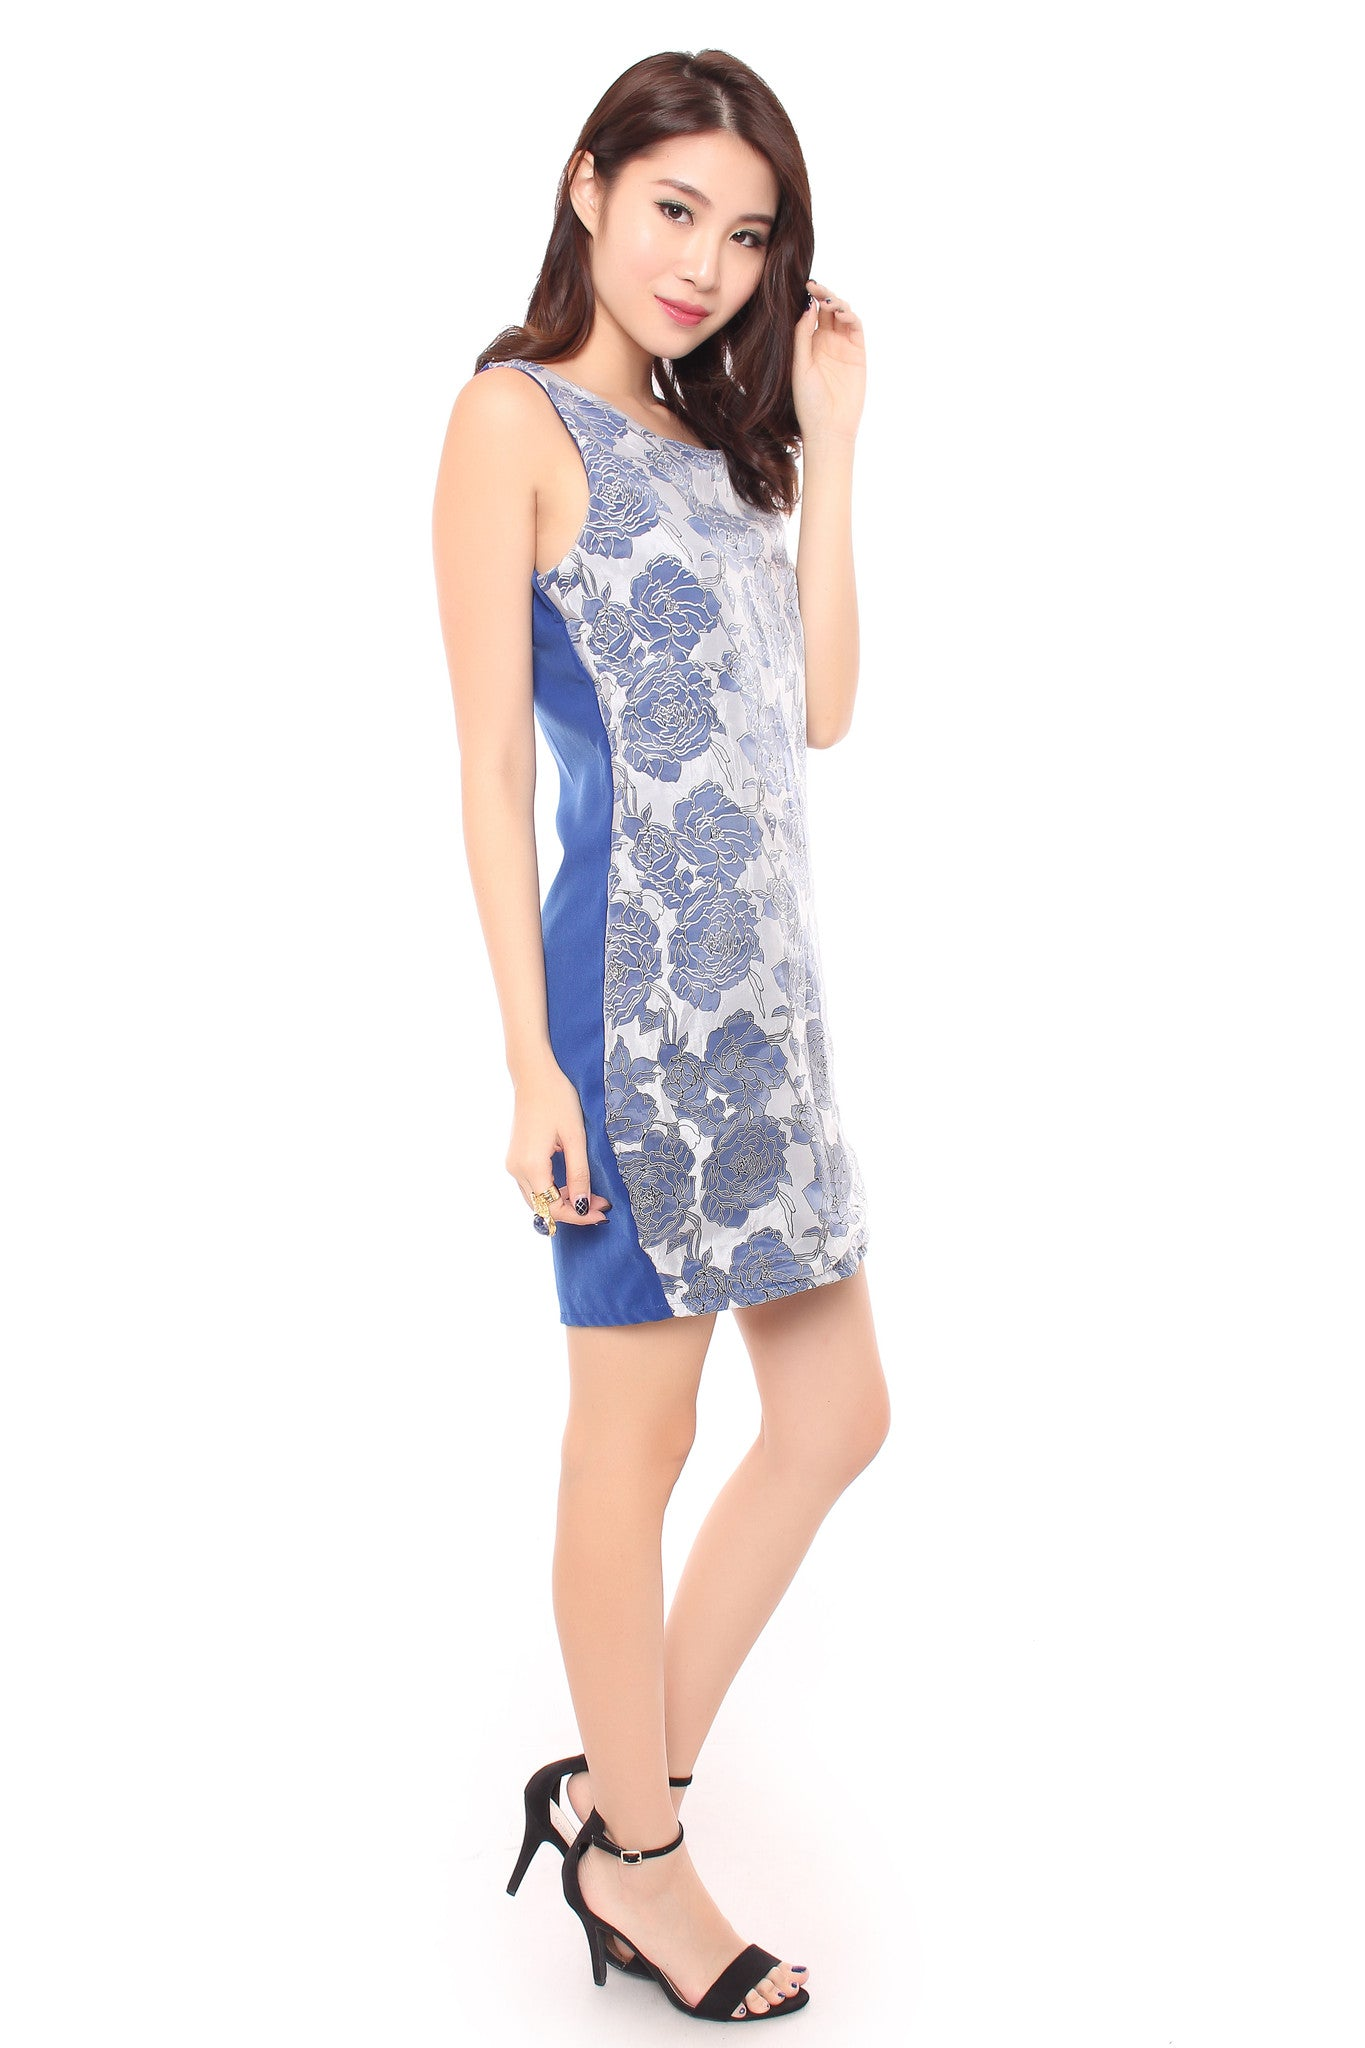 FLORAL ORIENTAL DRESS IN BLUE